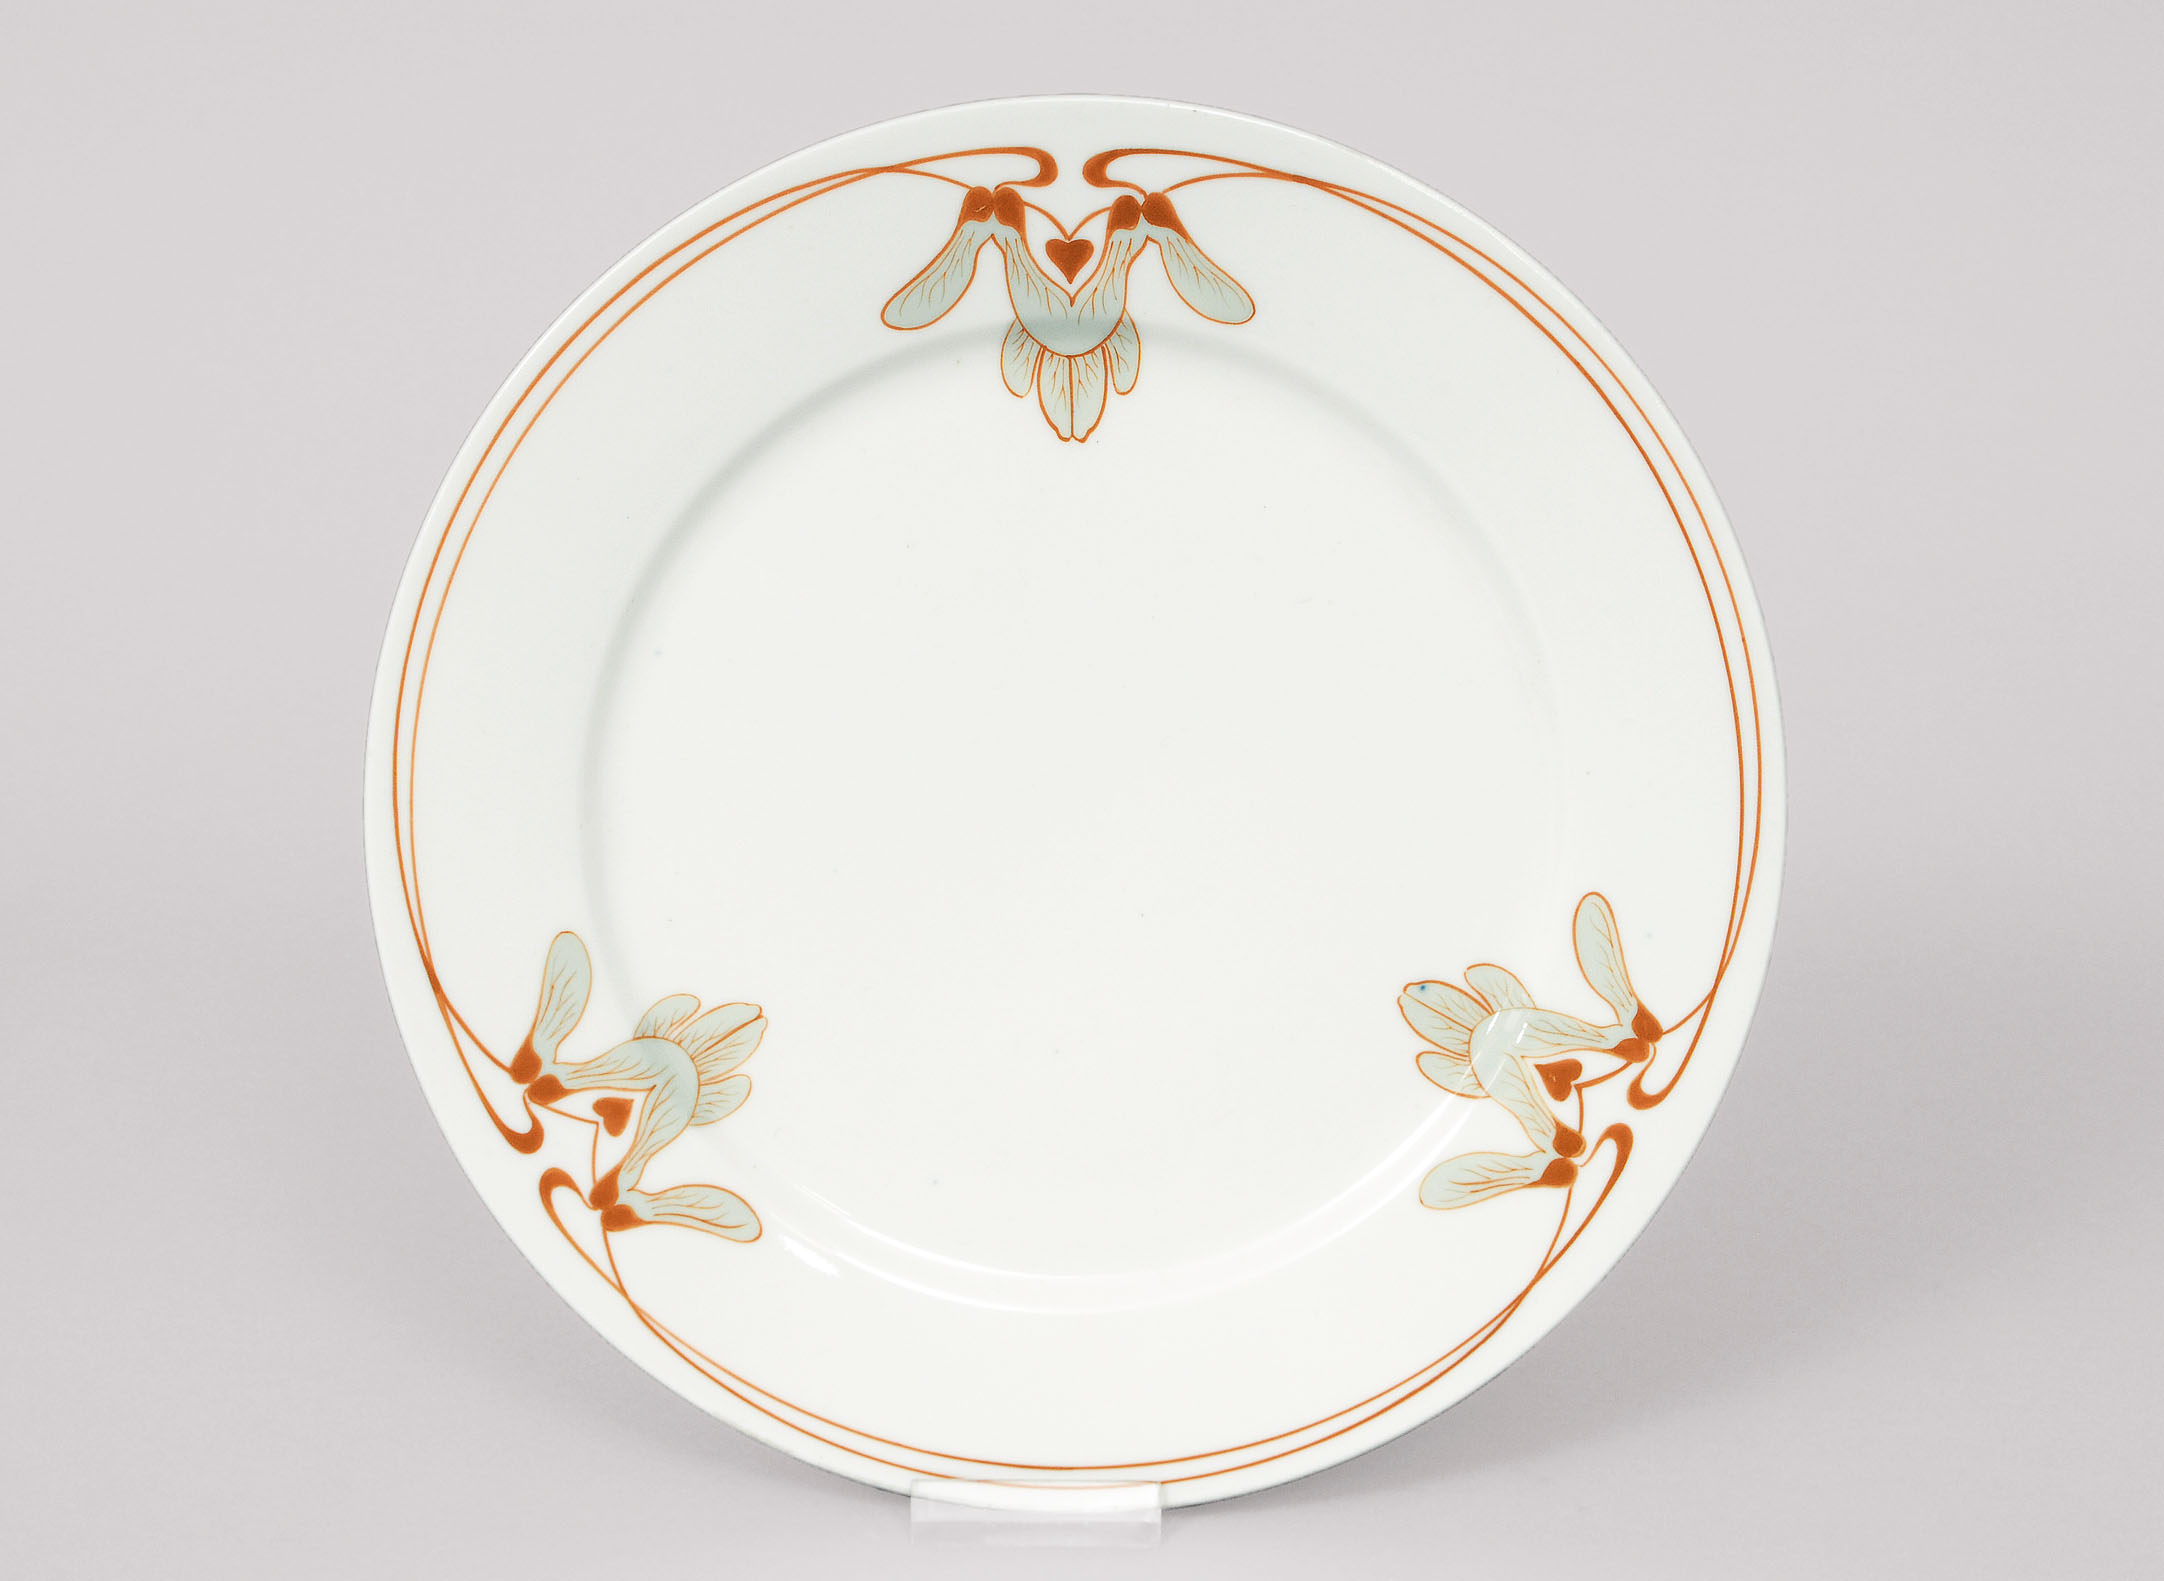 An Art-Nouvau plate with maple pattern